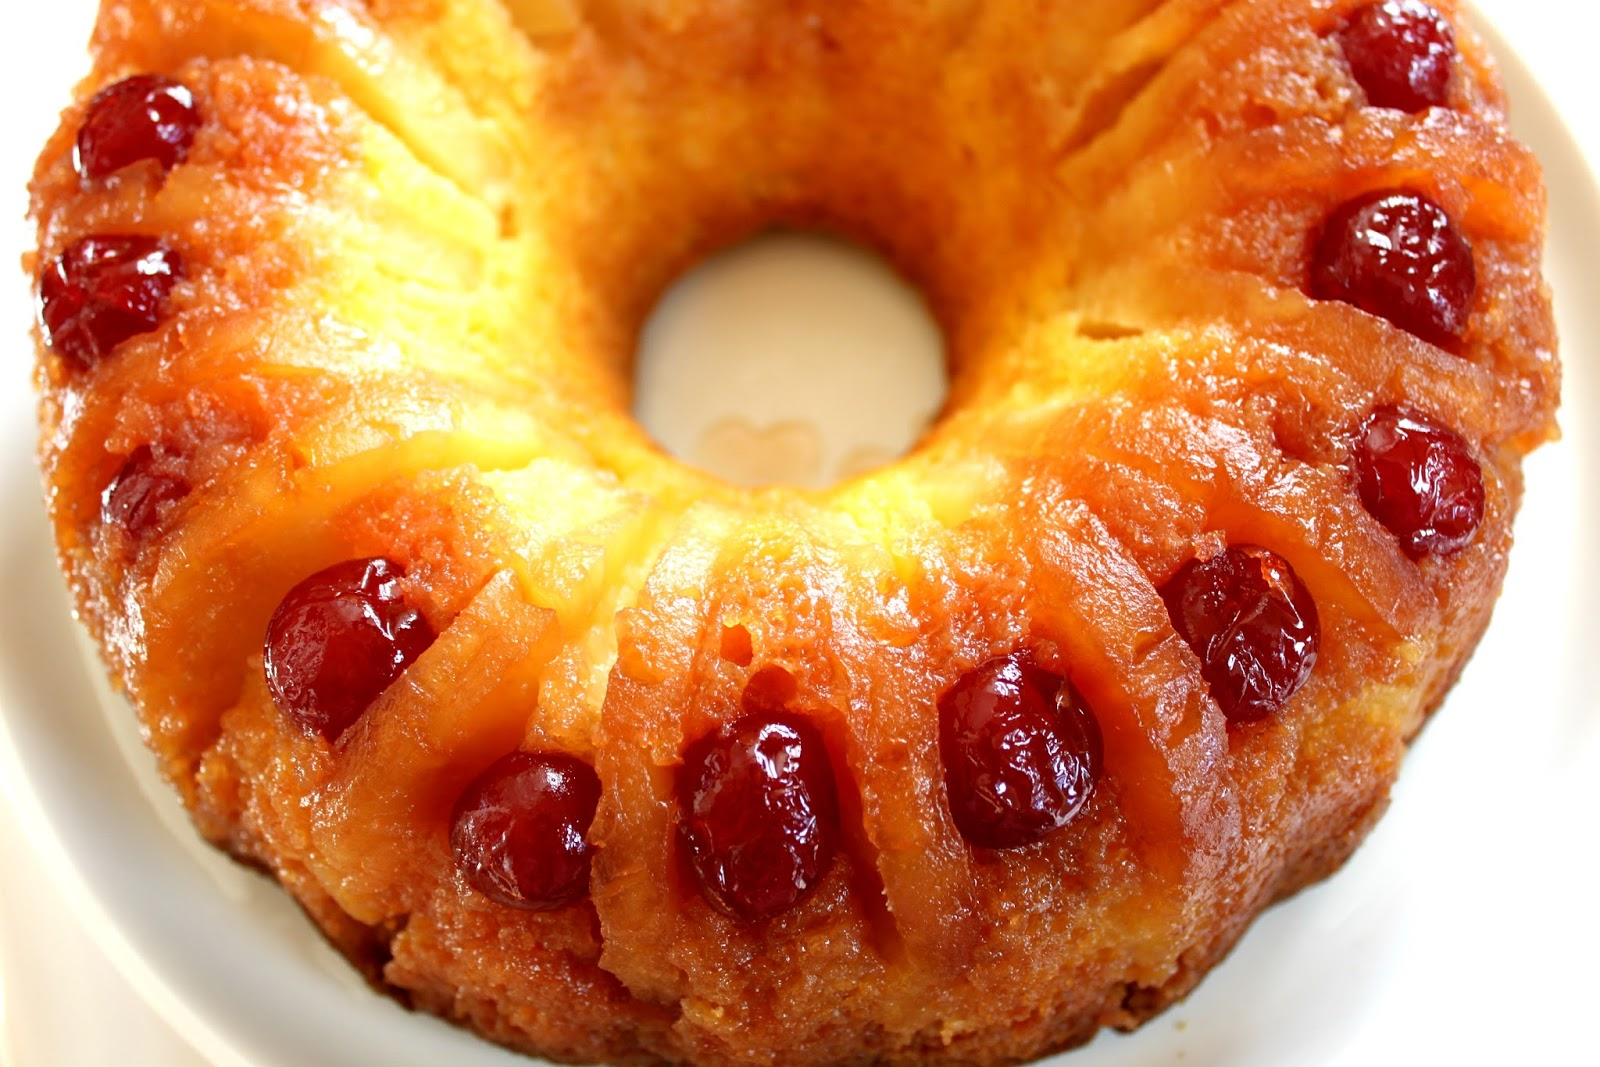 A Feast for the Eyes: Pineapple Upside Down Bundt Cake